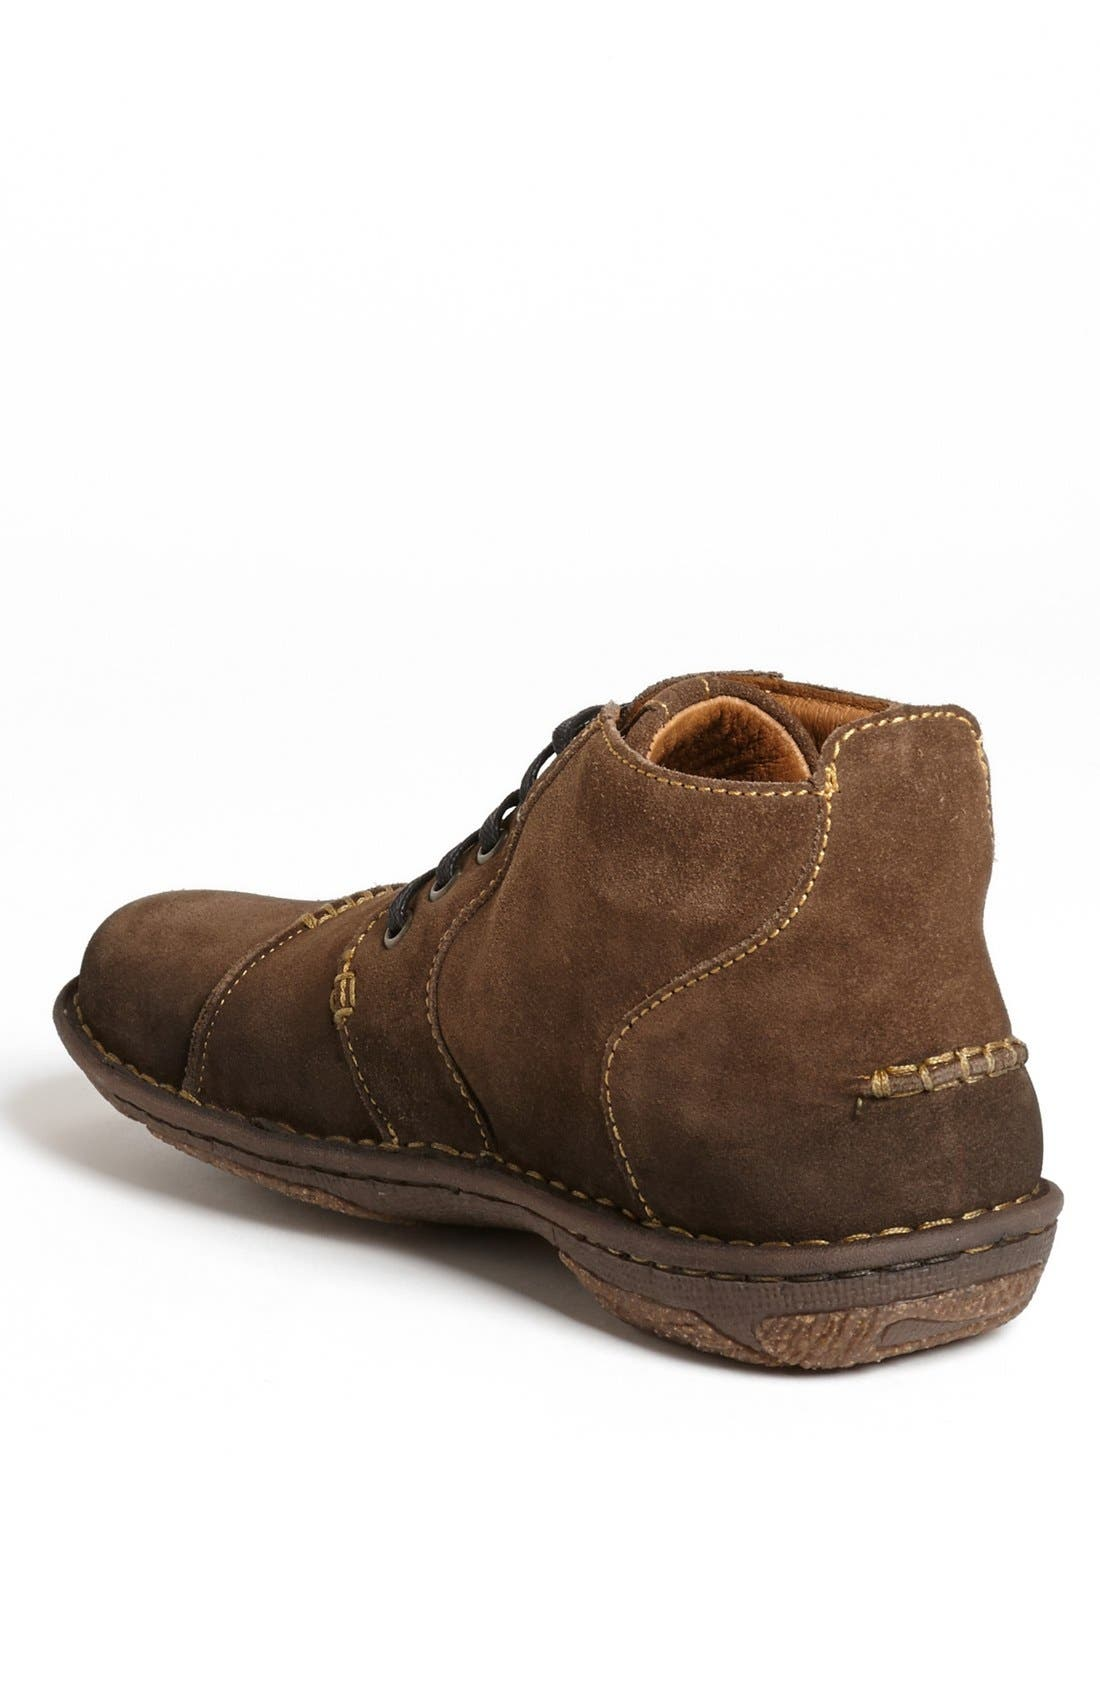 Alternate Image 2  - Børn 'Edlan' Cap Toe Chukka Boot (Men)